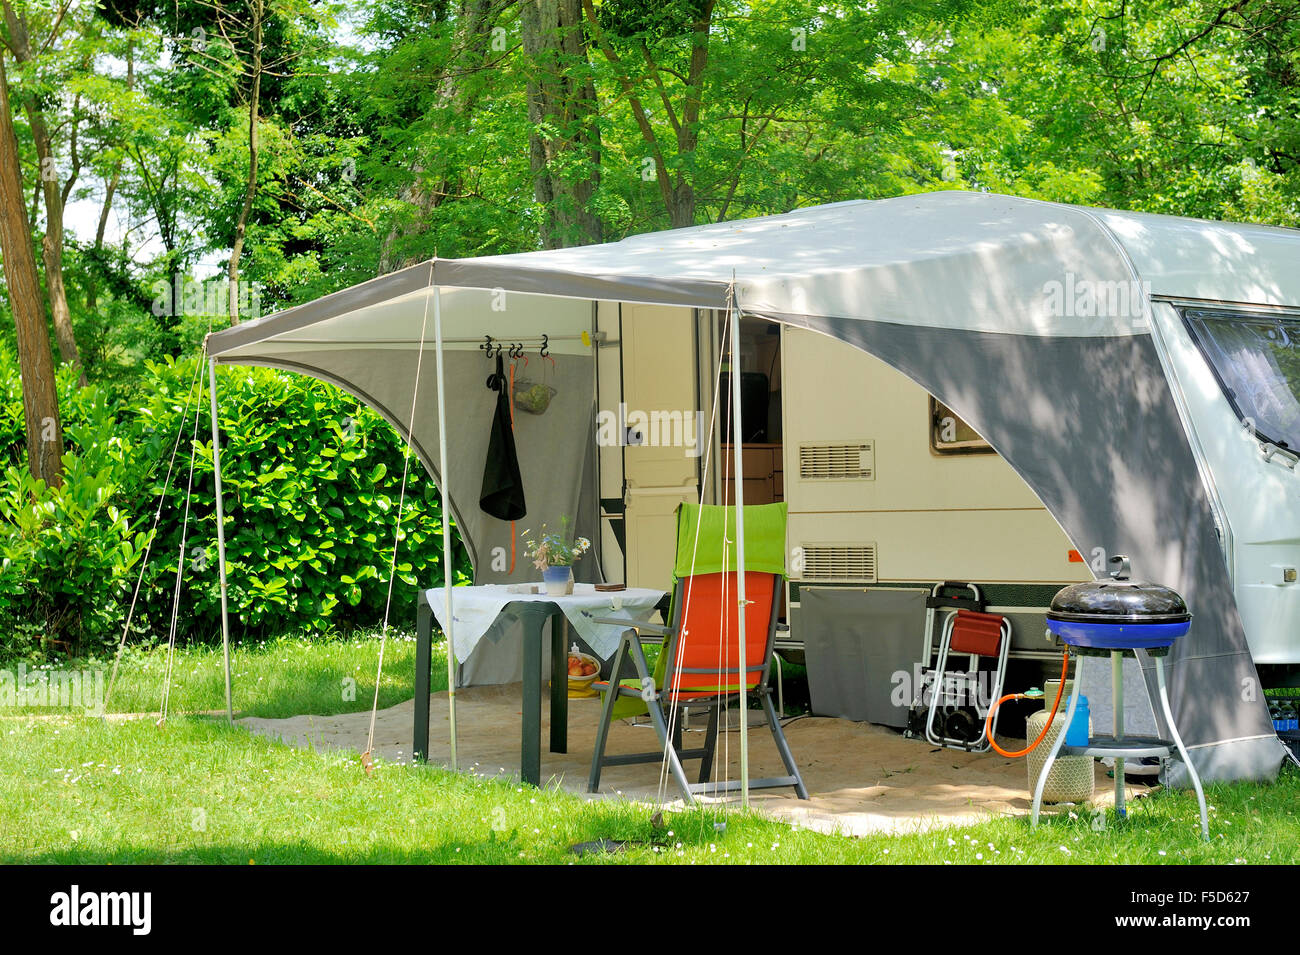 Caravan with a awning at a c& site & Caravan with a awning at a camp site Stock Photo Royalty Free ...